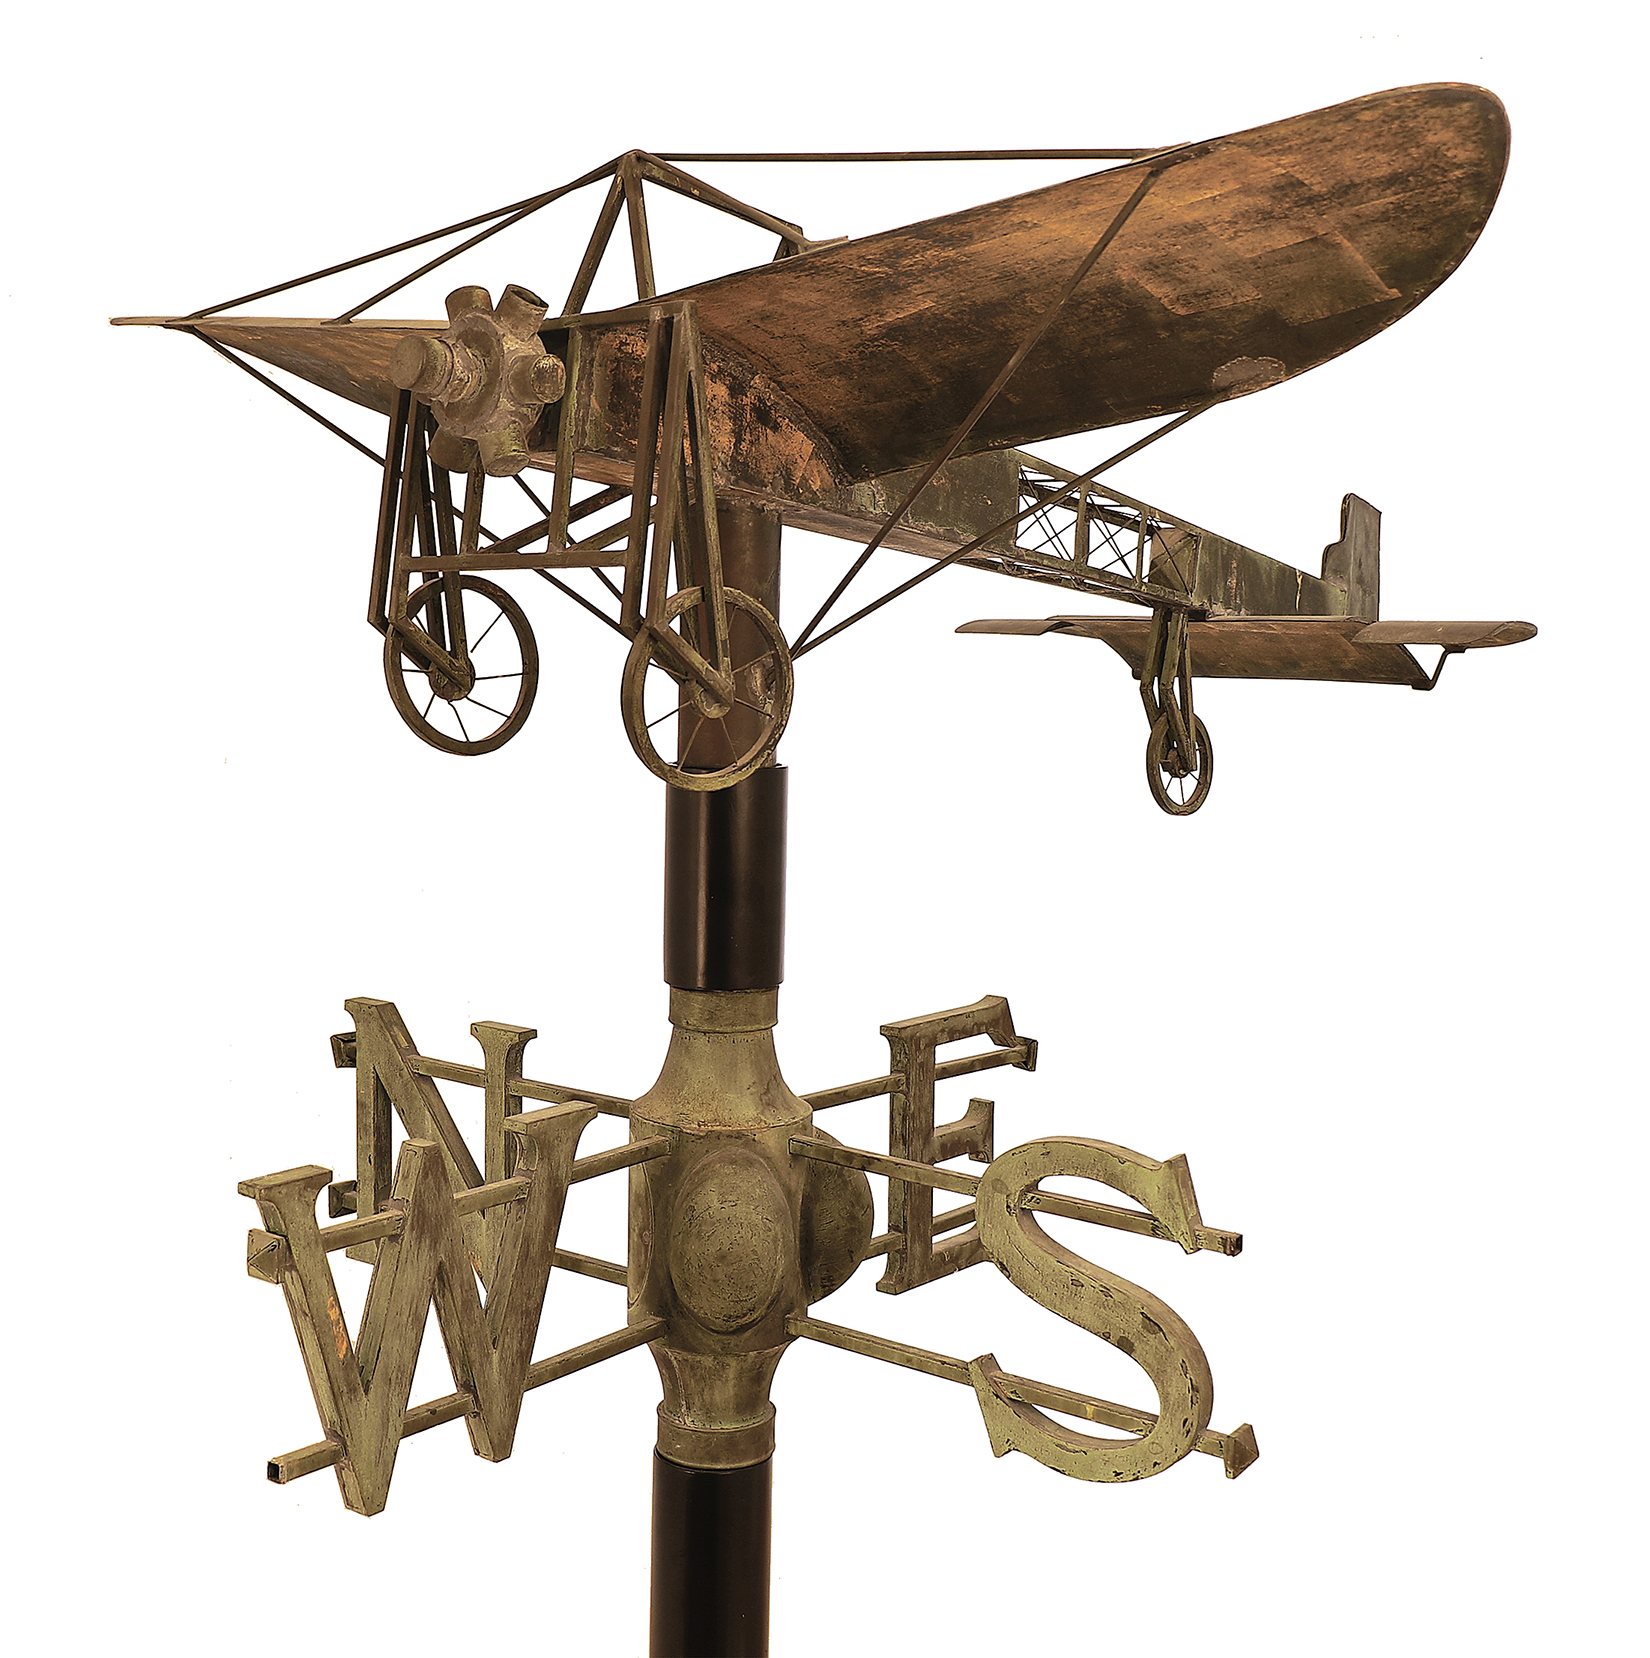 """""""The Blériot XI Monoplane,"""" from the Poland Spring House, Poland Spring, Me., circa 1909-14. Copper, 10 by 57¼ by 55 inches. Collection of Michael and Patricia Del Castello, photo Michael Lynberg."""